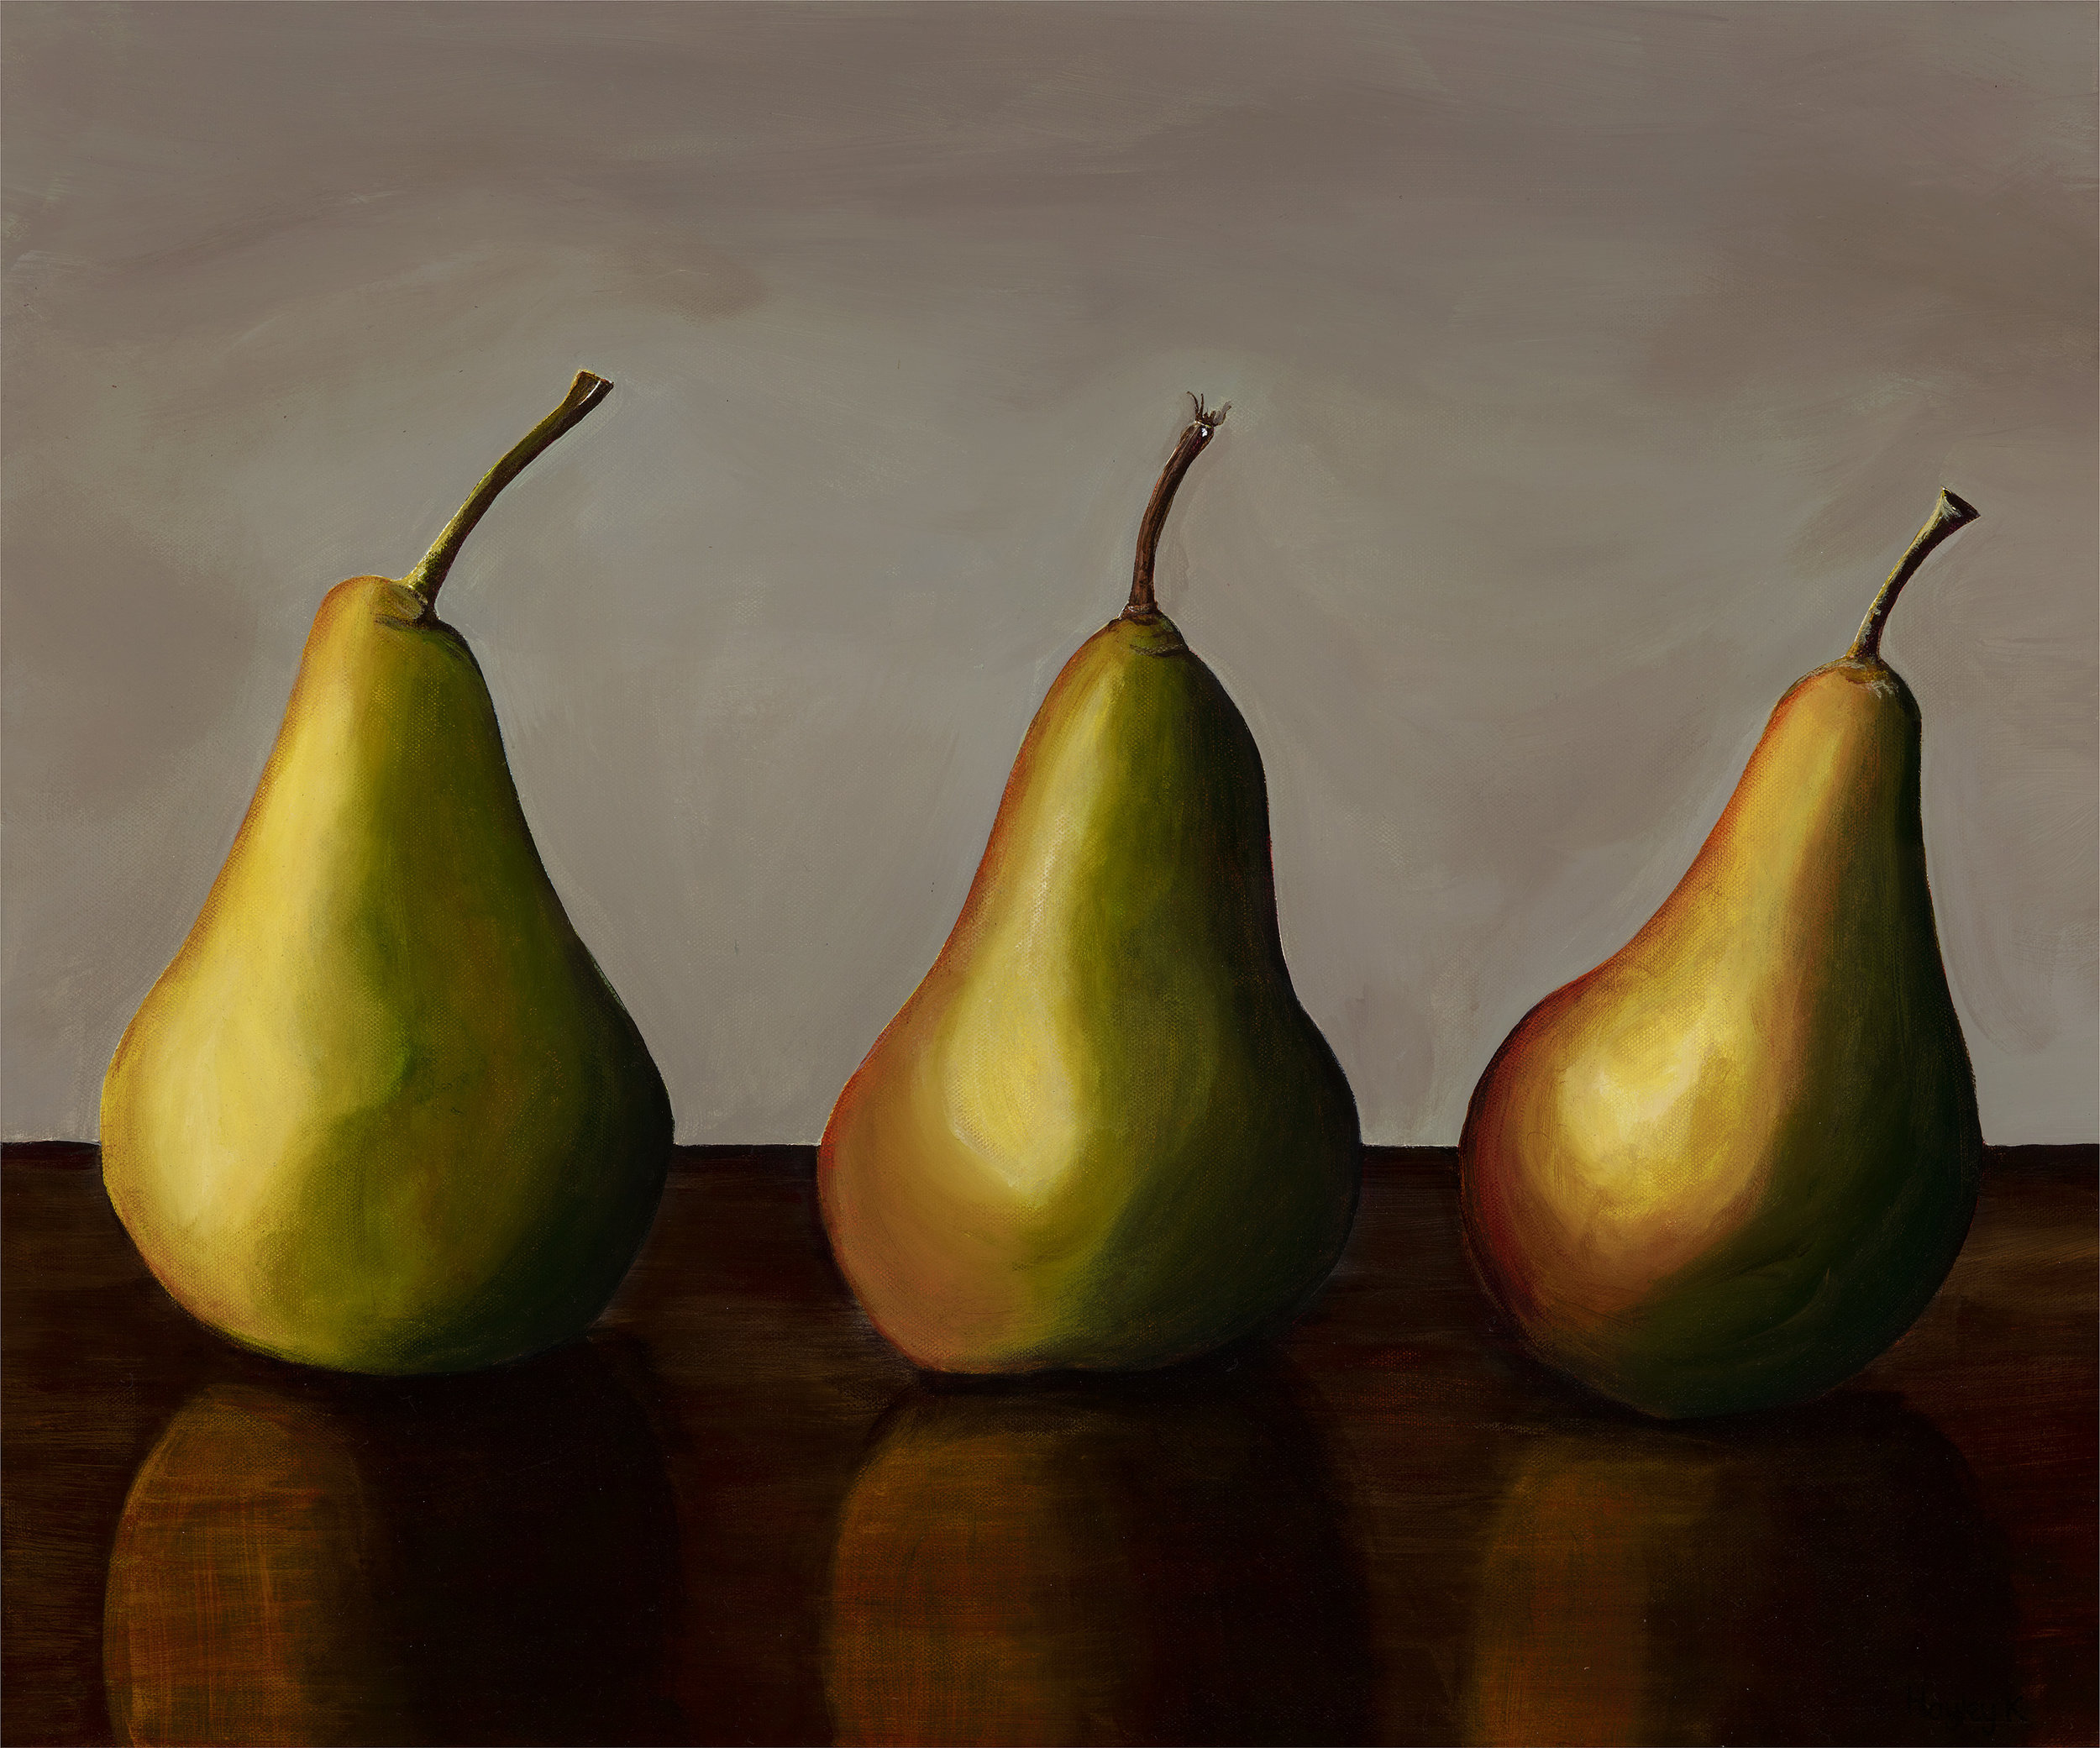 More than a pear 61cm (W) x 50.8cm (H) $500  I took a series of reference photos for a commission work in 2018. I loved how the light danced off the pears so much, I decided to do a series of paintings from than one perfect moment captured in time.